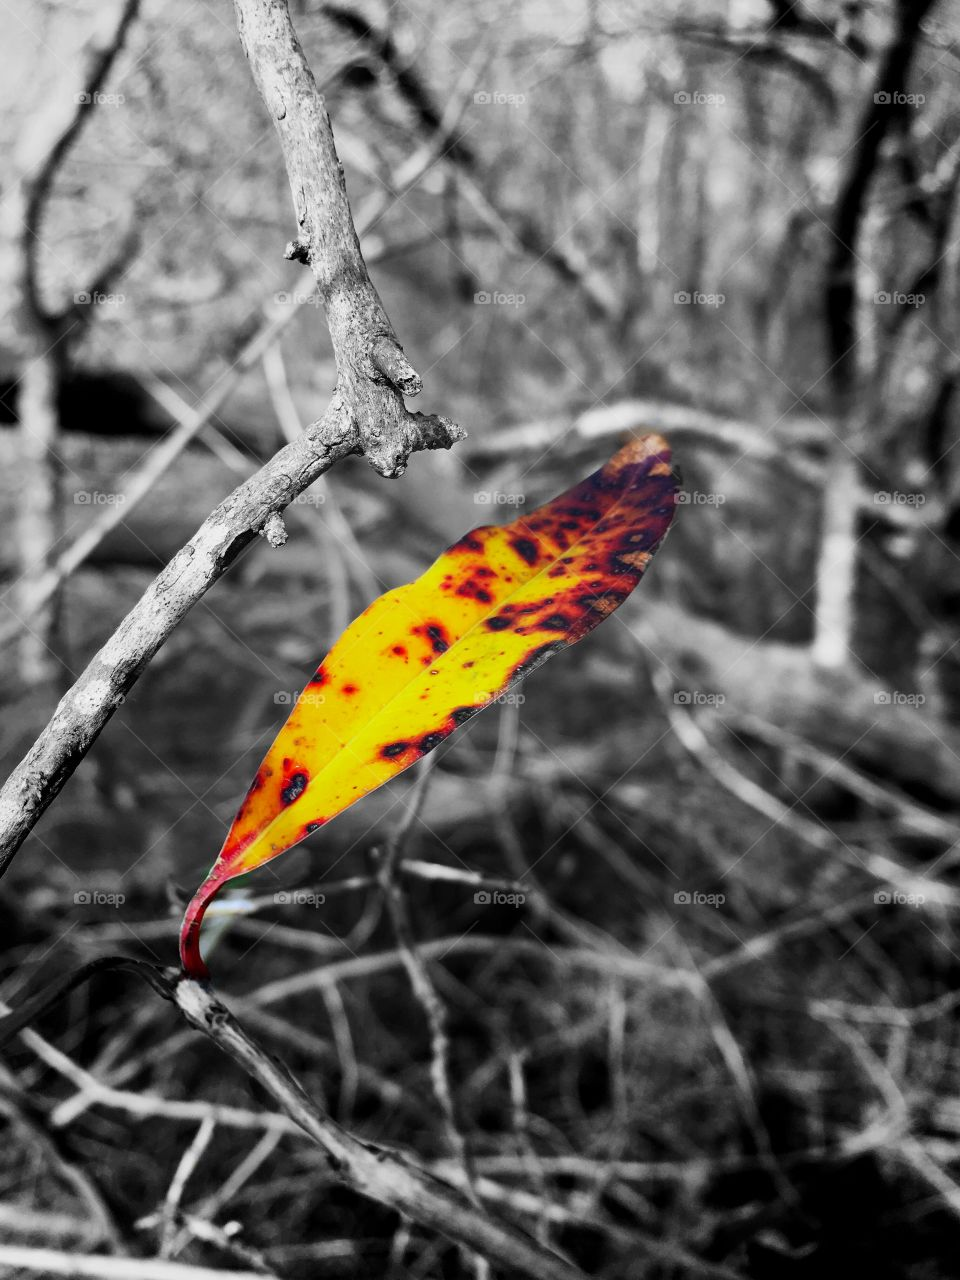 Color pop of s single vivid leaf during winter in the forest